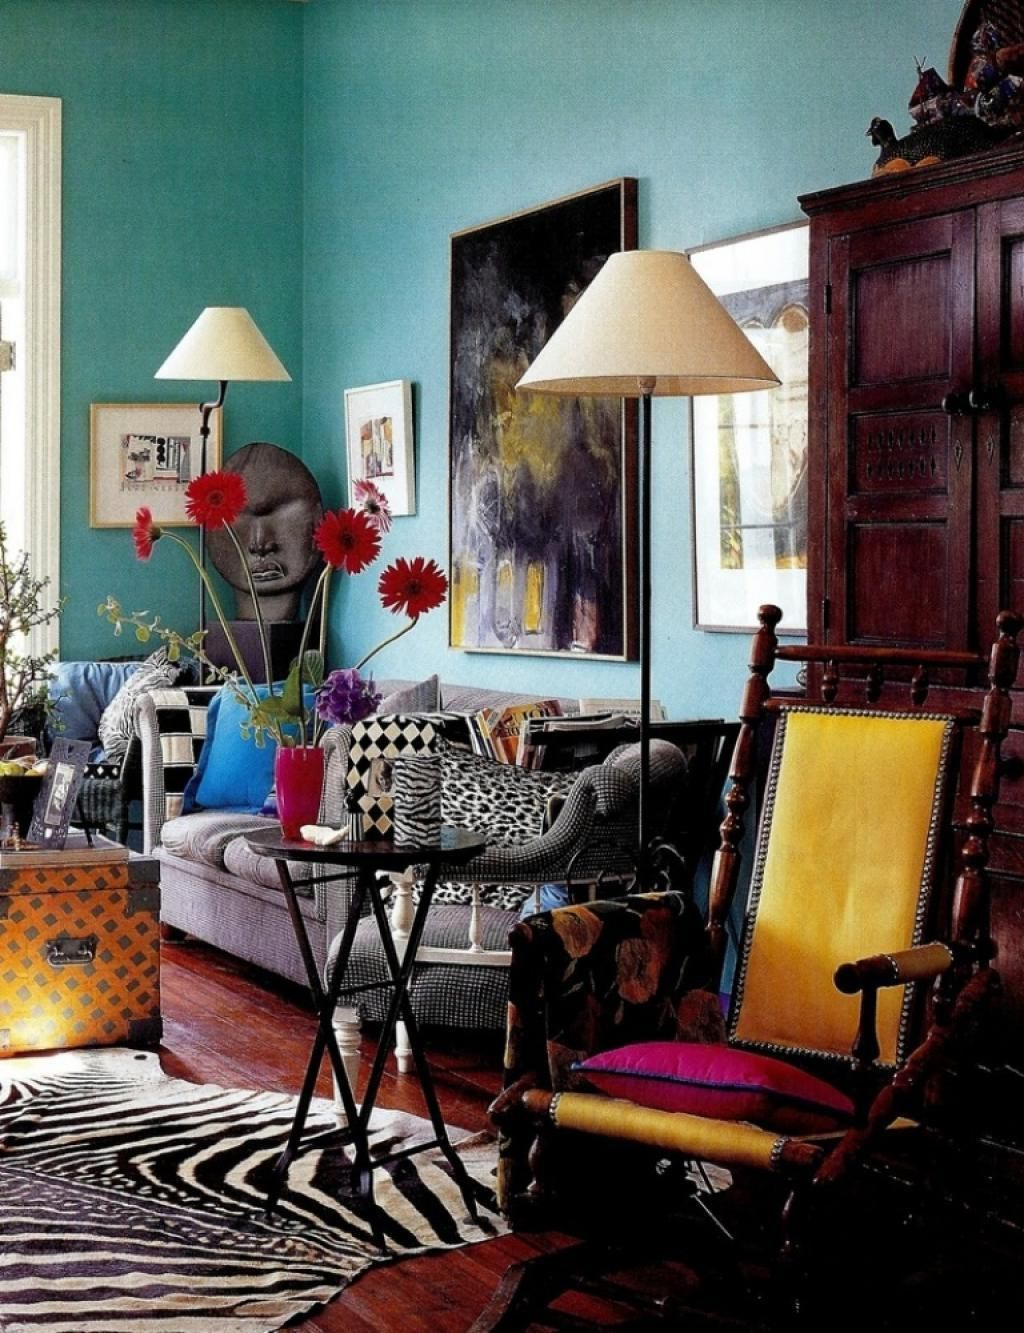 Eclectic Decor Blending Antique And Modern Items Living Room Decor Eclectic Modern Eclectic Living Room Retro Style Living Room